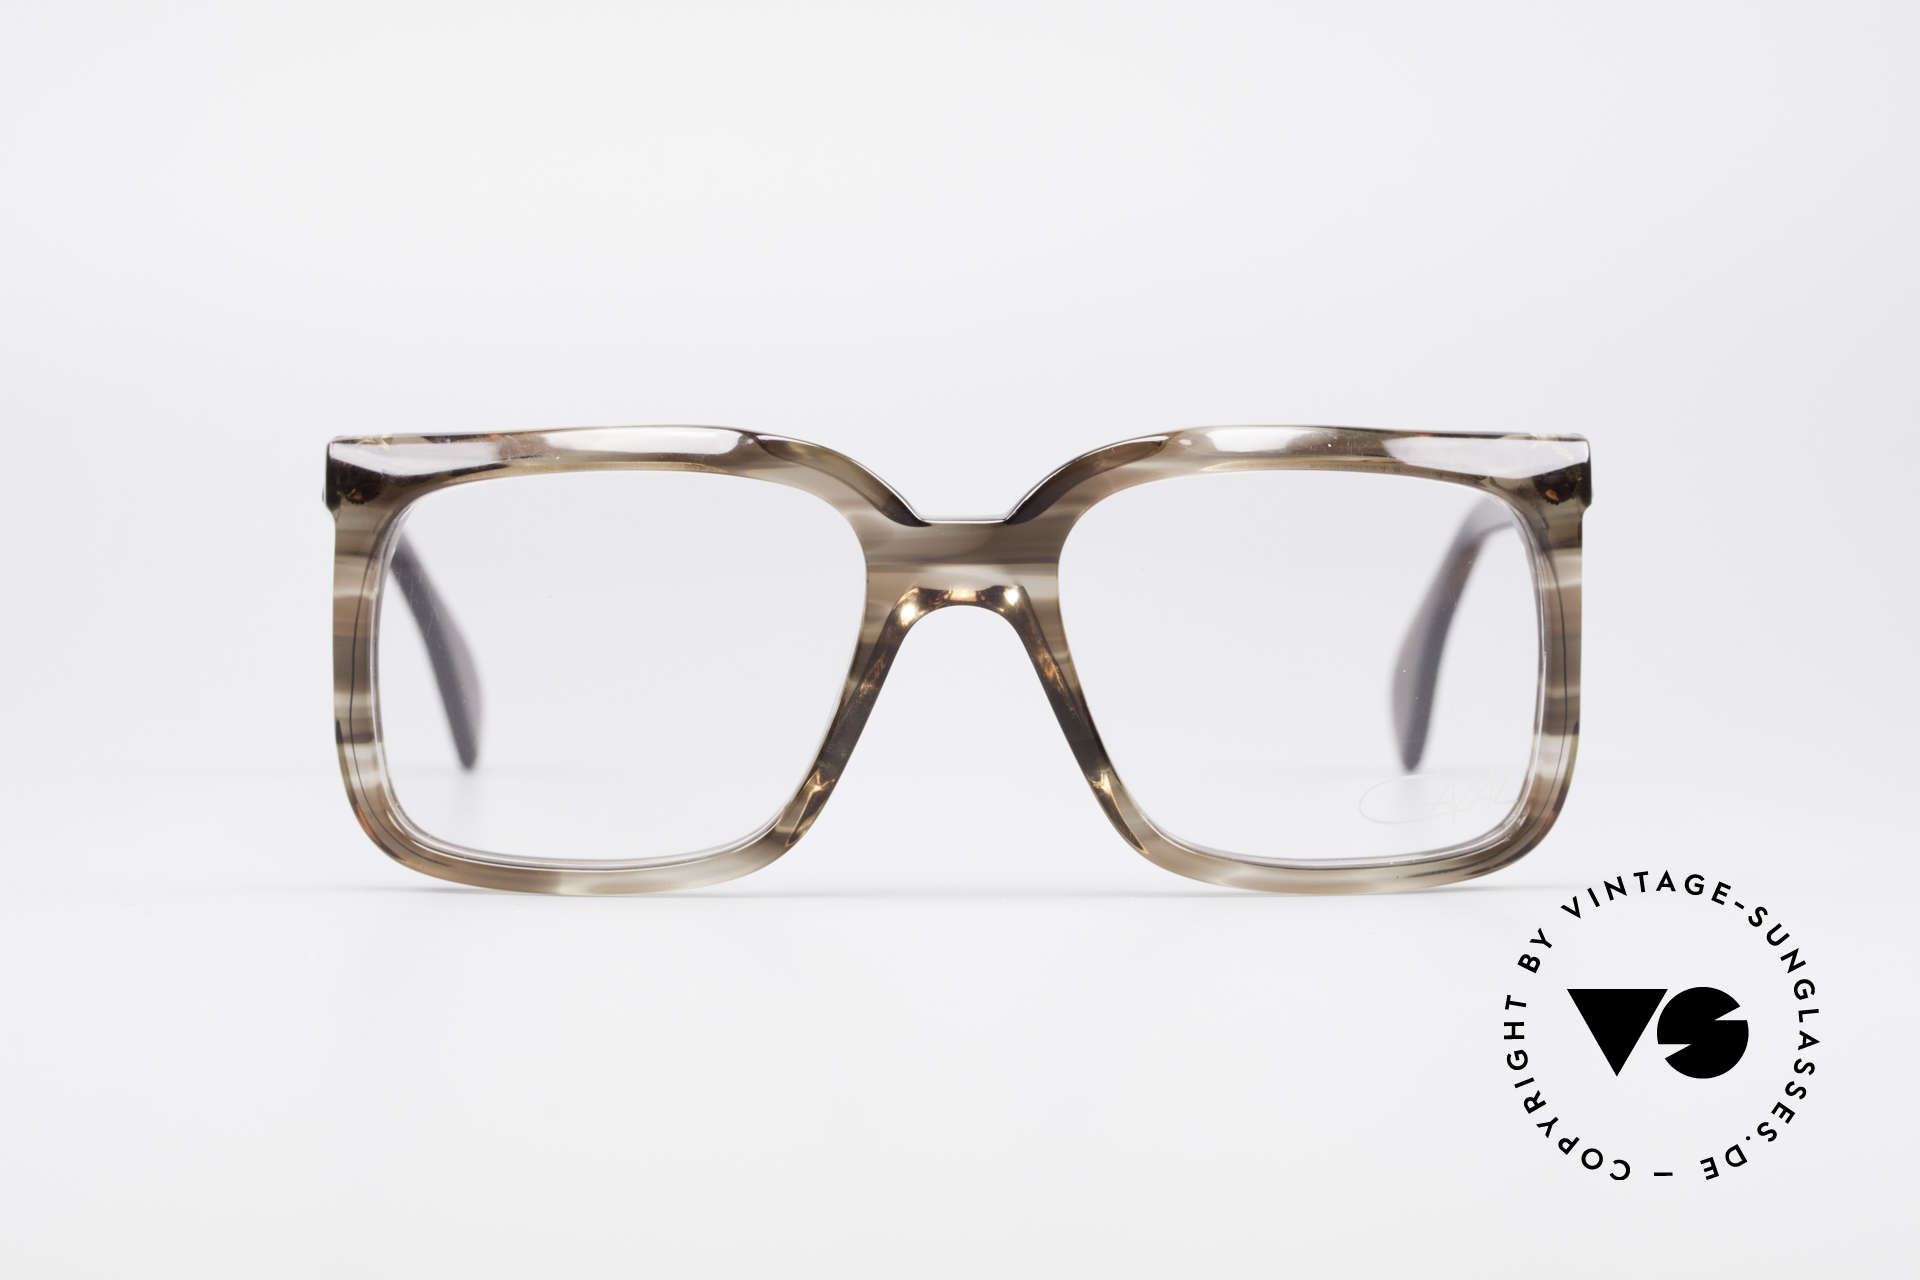 a6d0d96813 Glasses Cazal 604 70 s Frame First Series